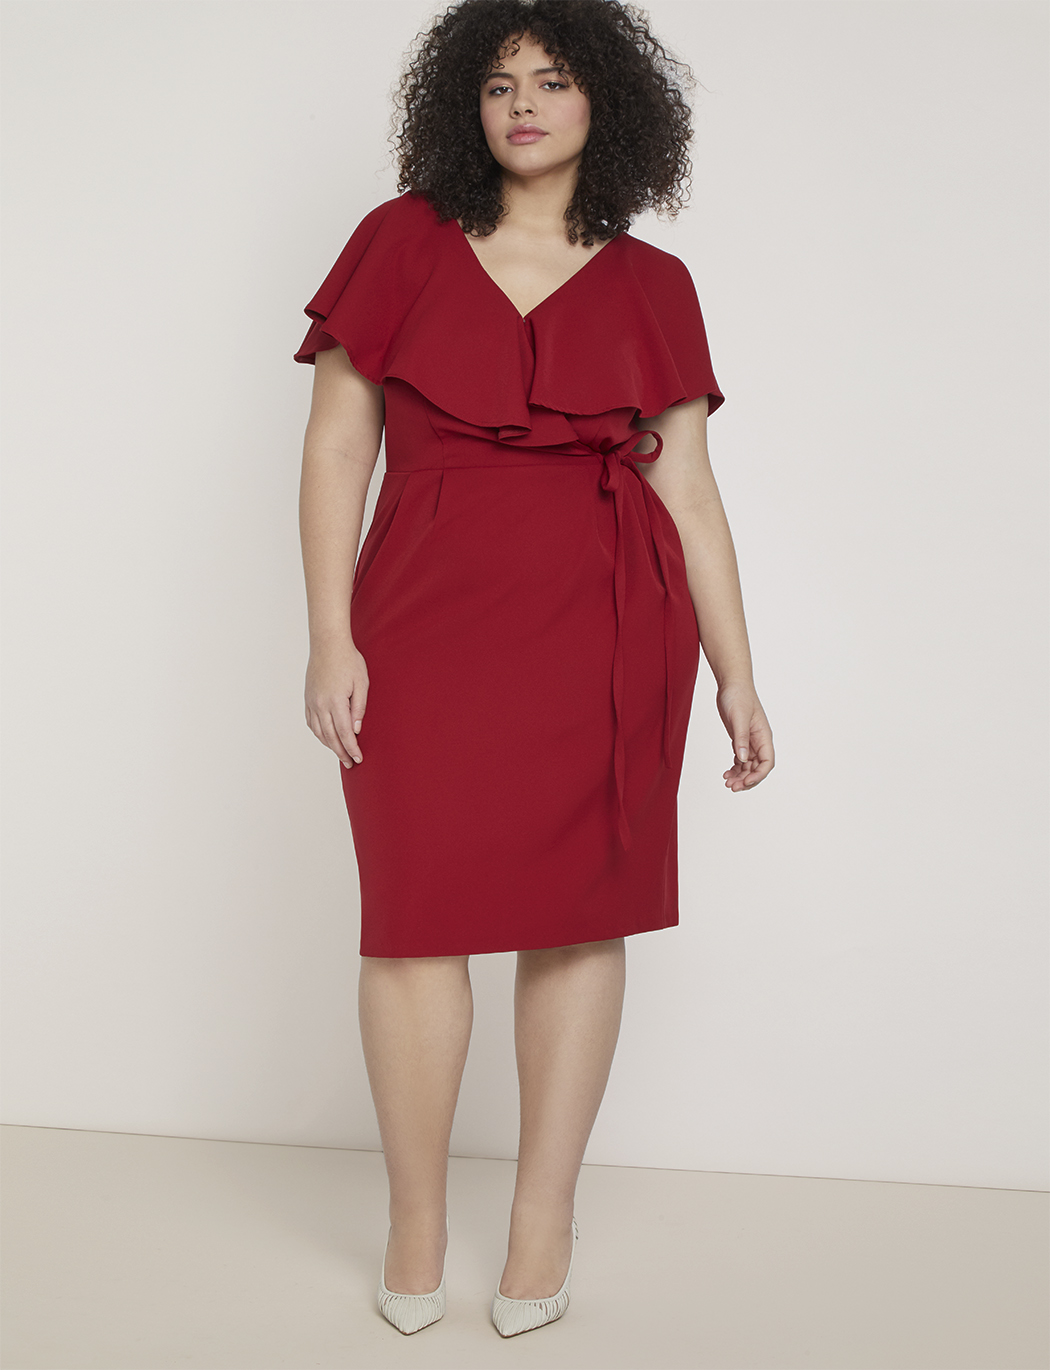 Surplice Bodice Dress with Cape Sleeve | Women\'s Plus Size Dresses | ELOQUII